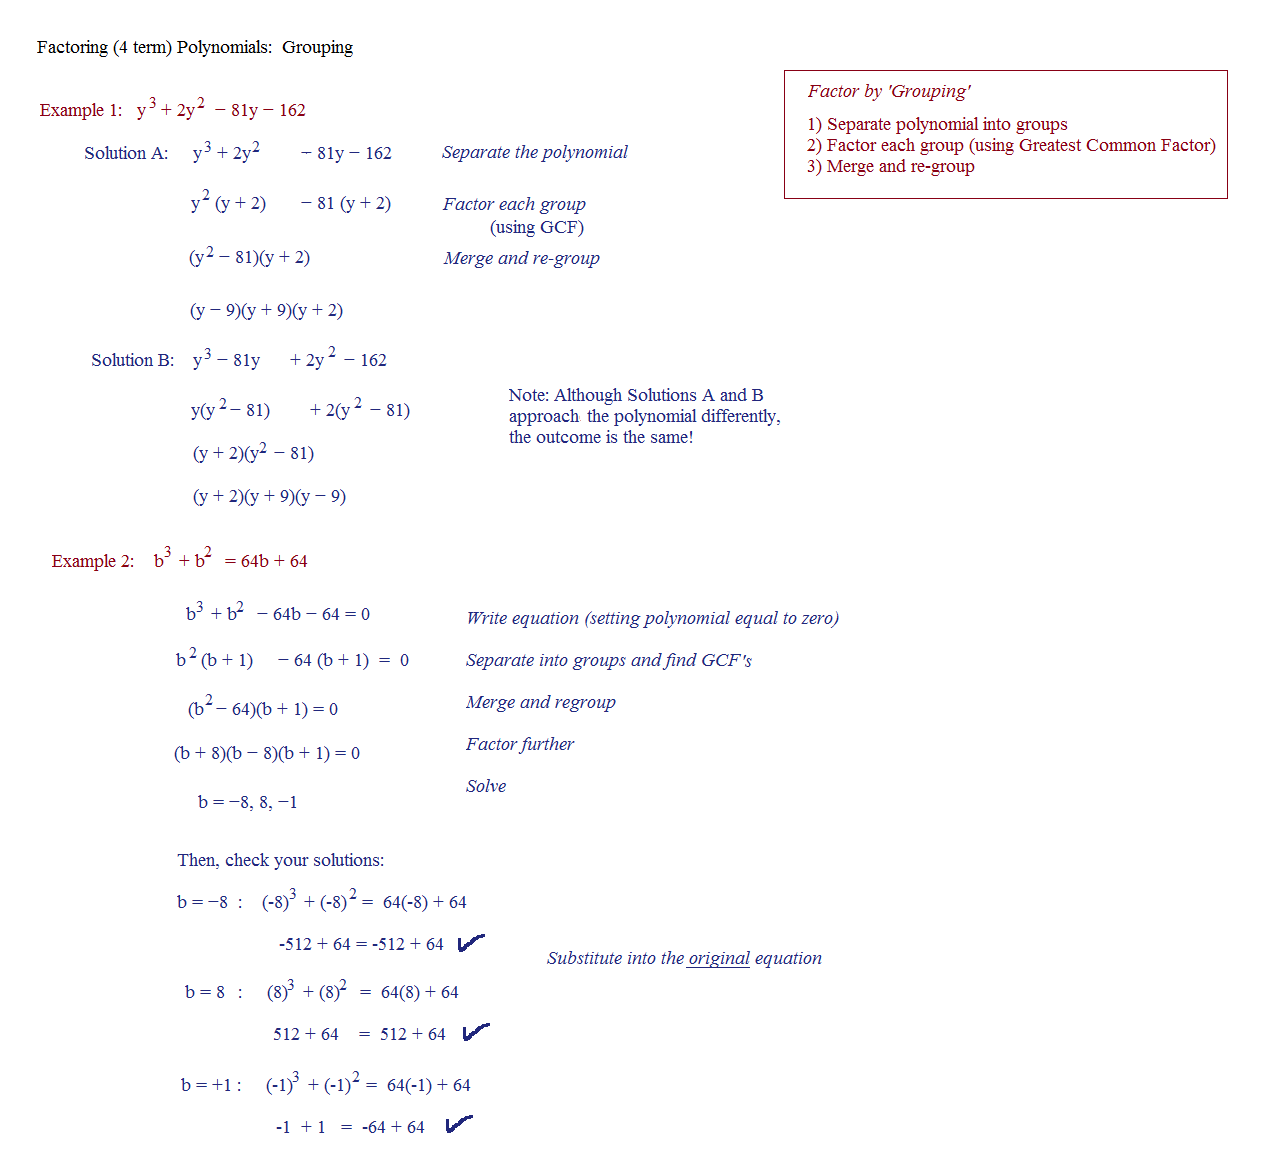 Factoring Polynomials By Grouping Worksheet